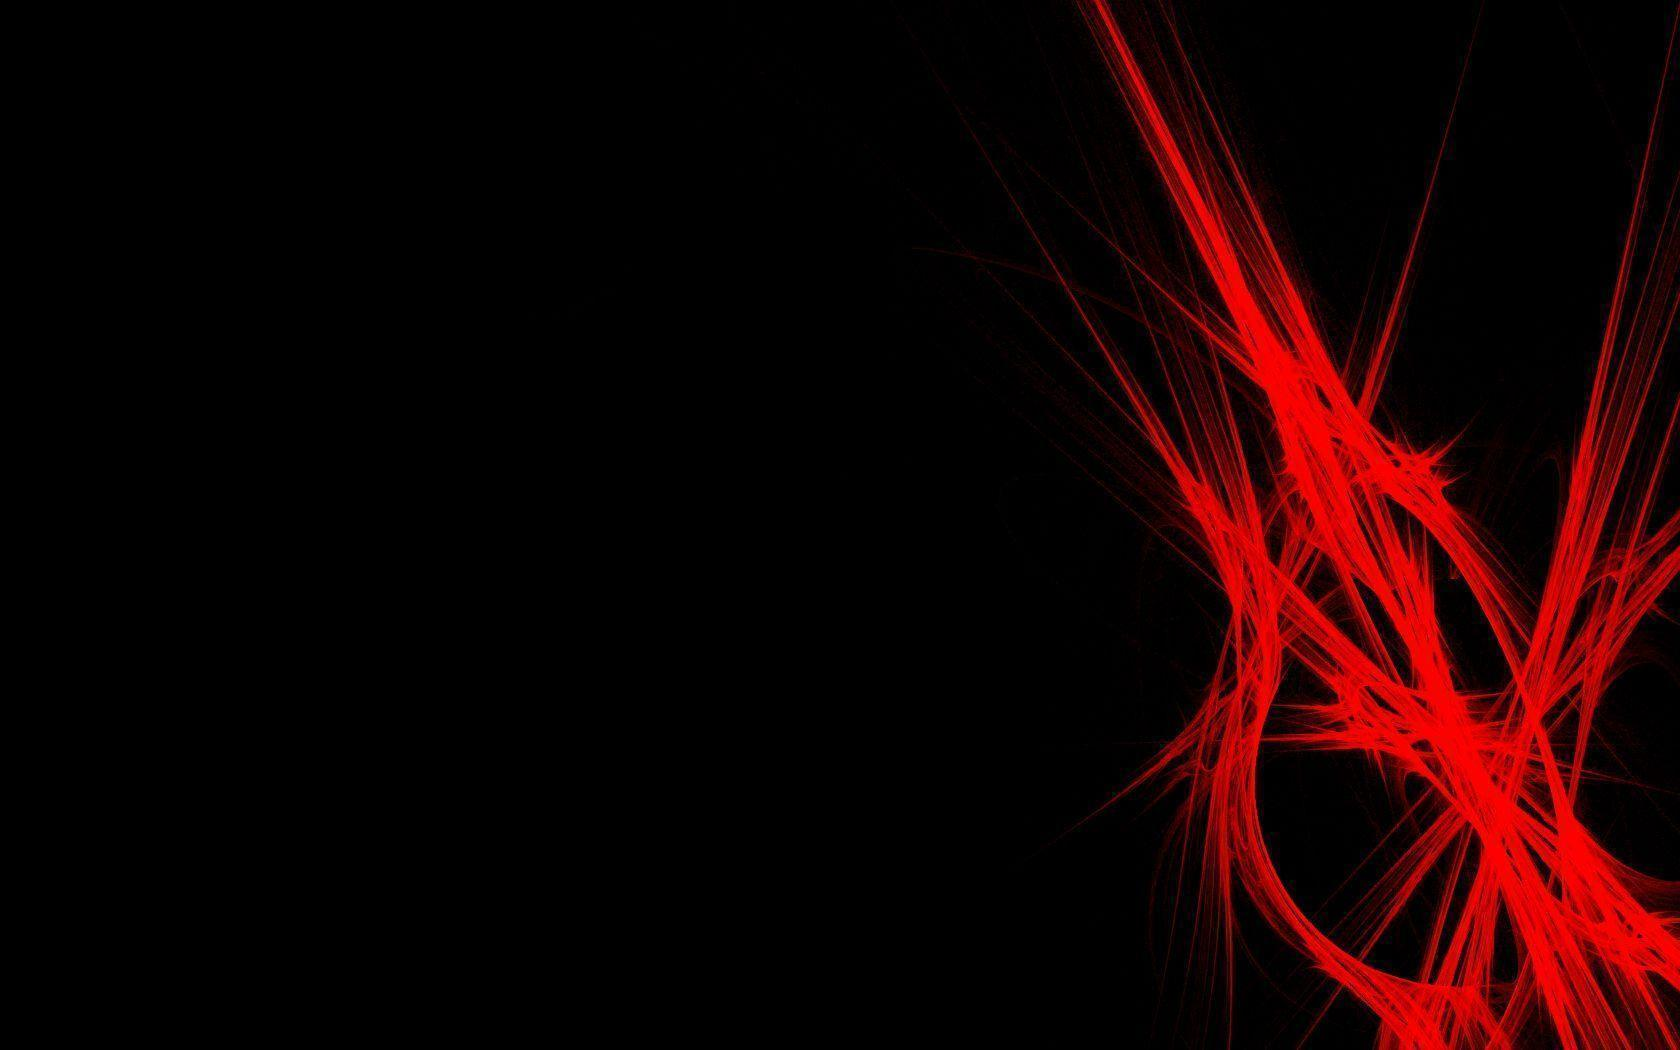 Cool black and red wallpapers wallpaper cave for Black red wallpaper